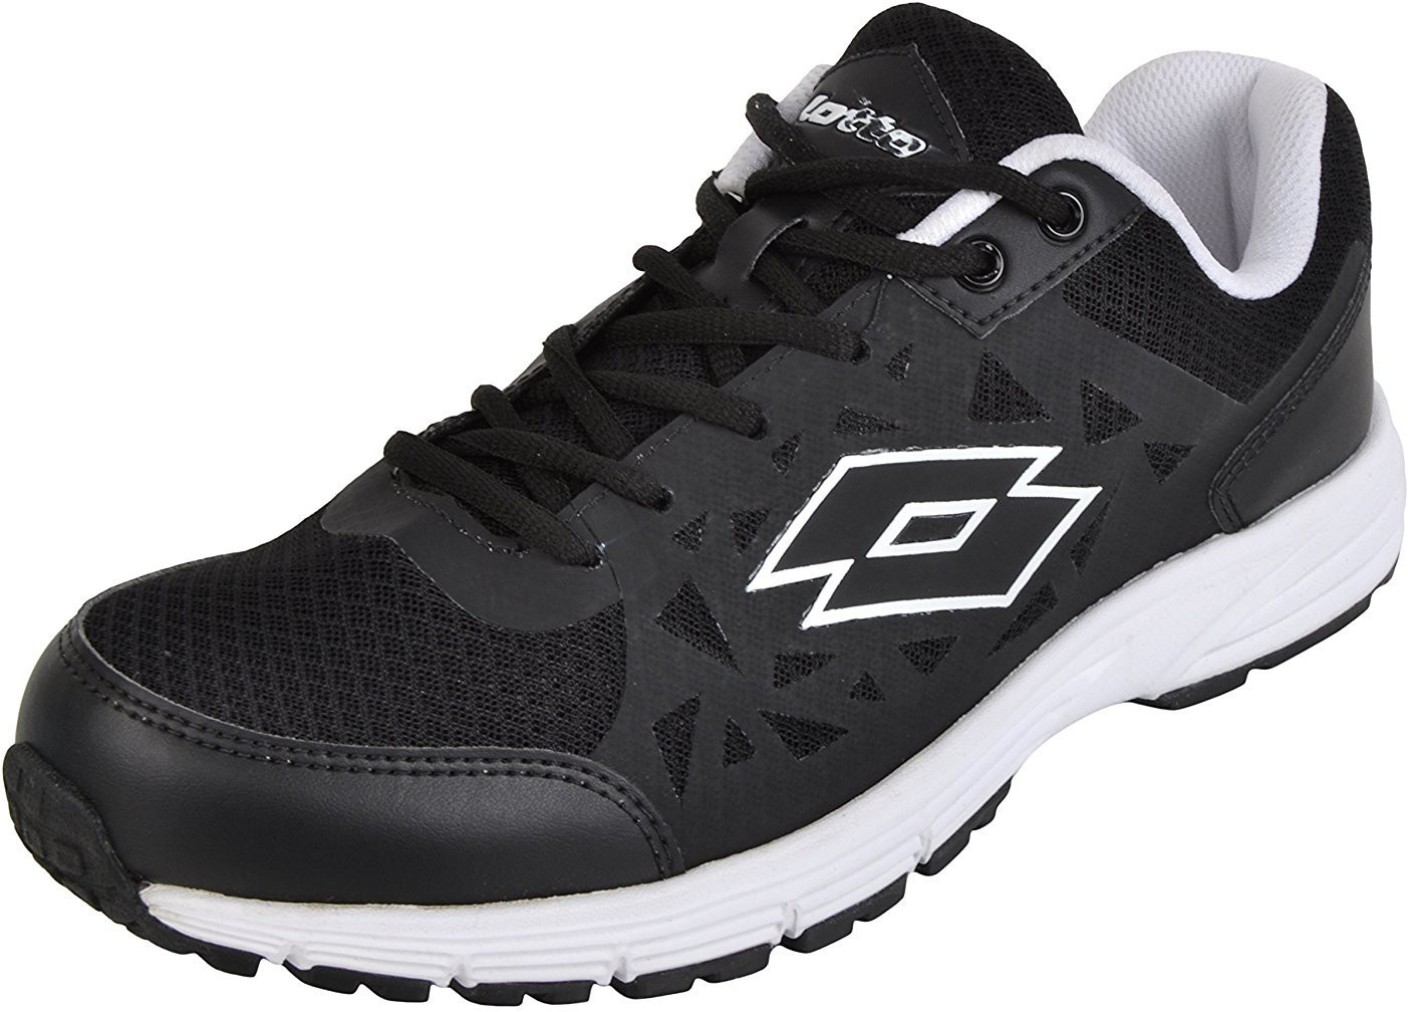 Lotto Tennis Shoes India